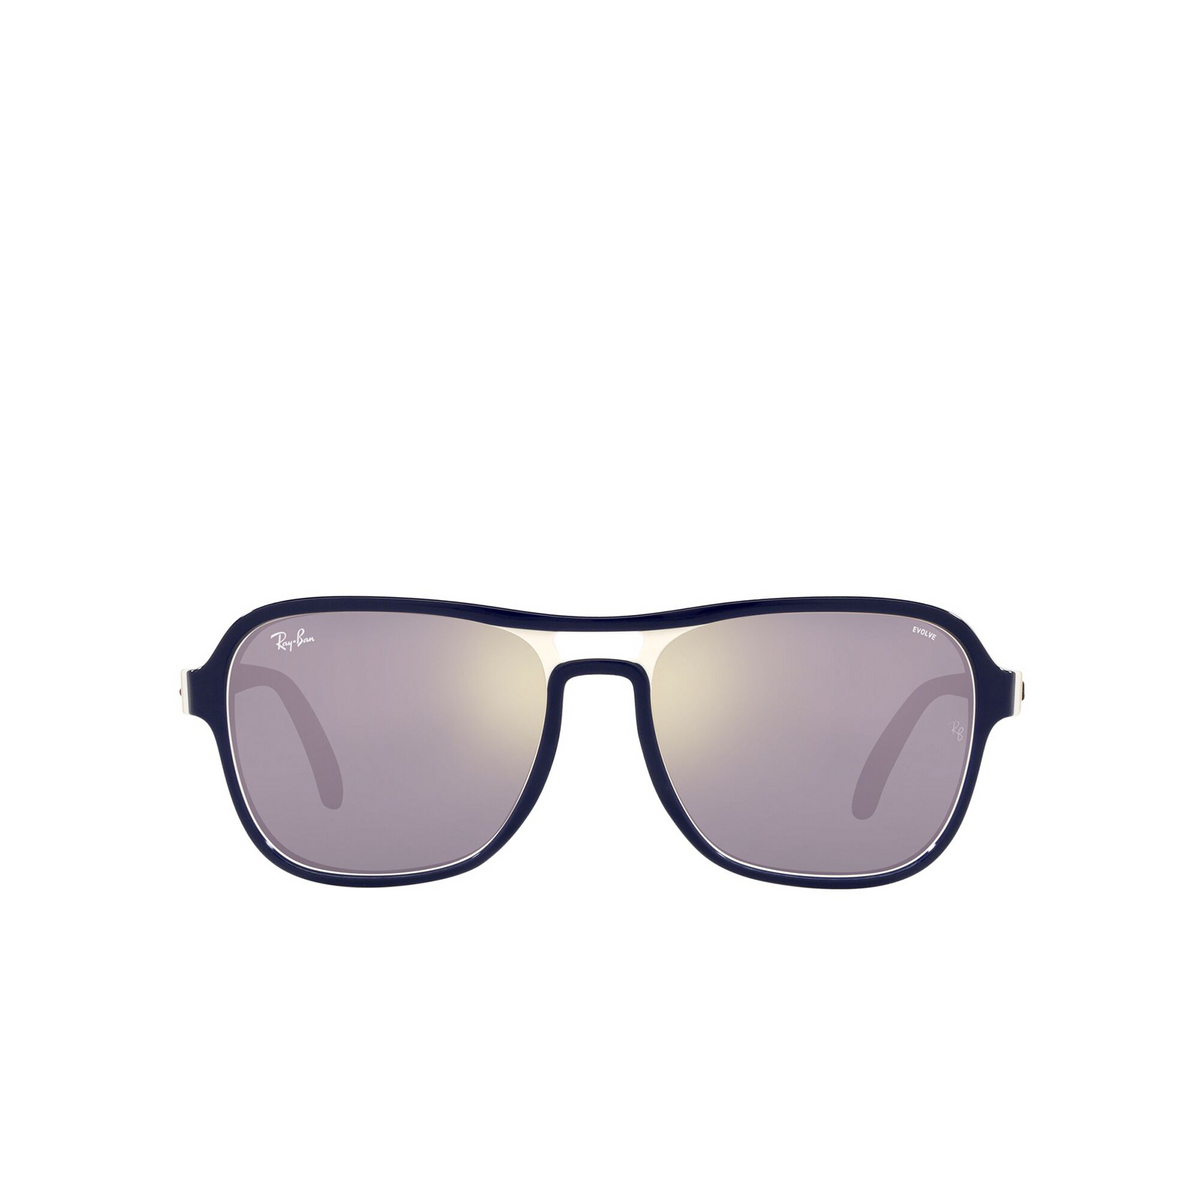 Ray-Ban® Square Sunglasses: State Side RB4356 color Blu Creamy Light Brown 6548B3 - front view.